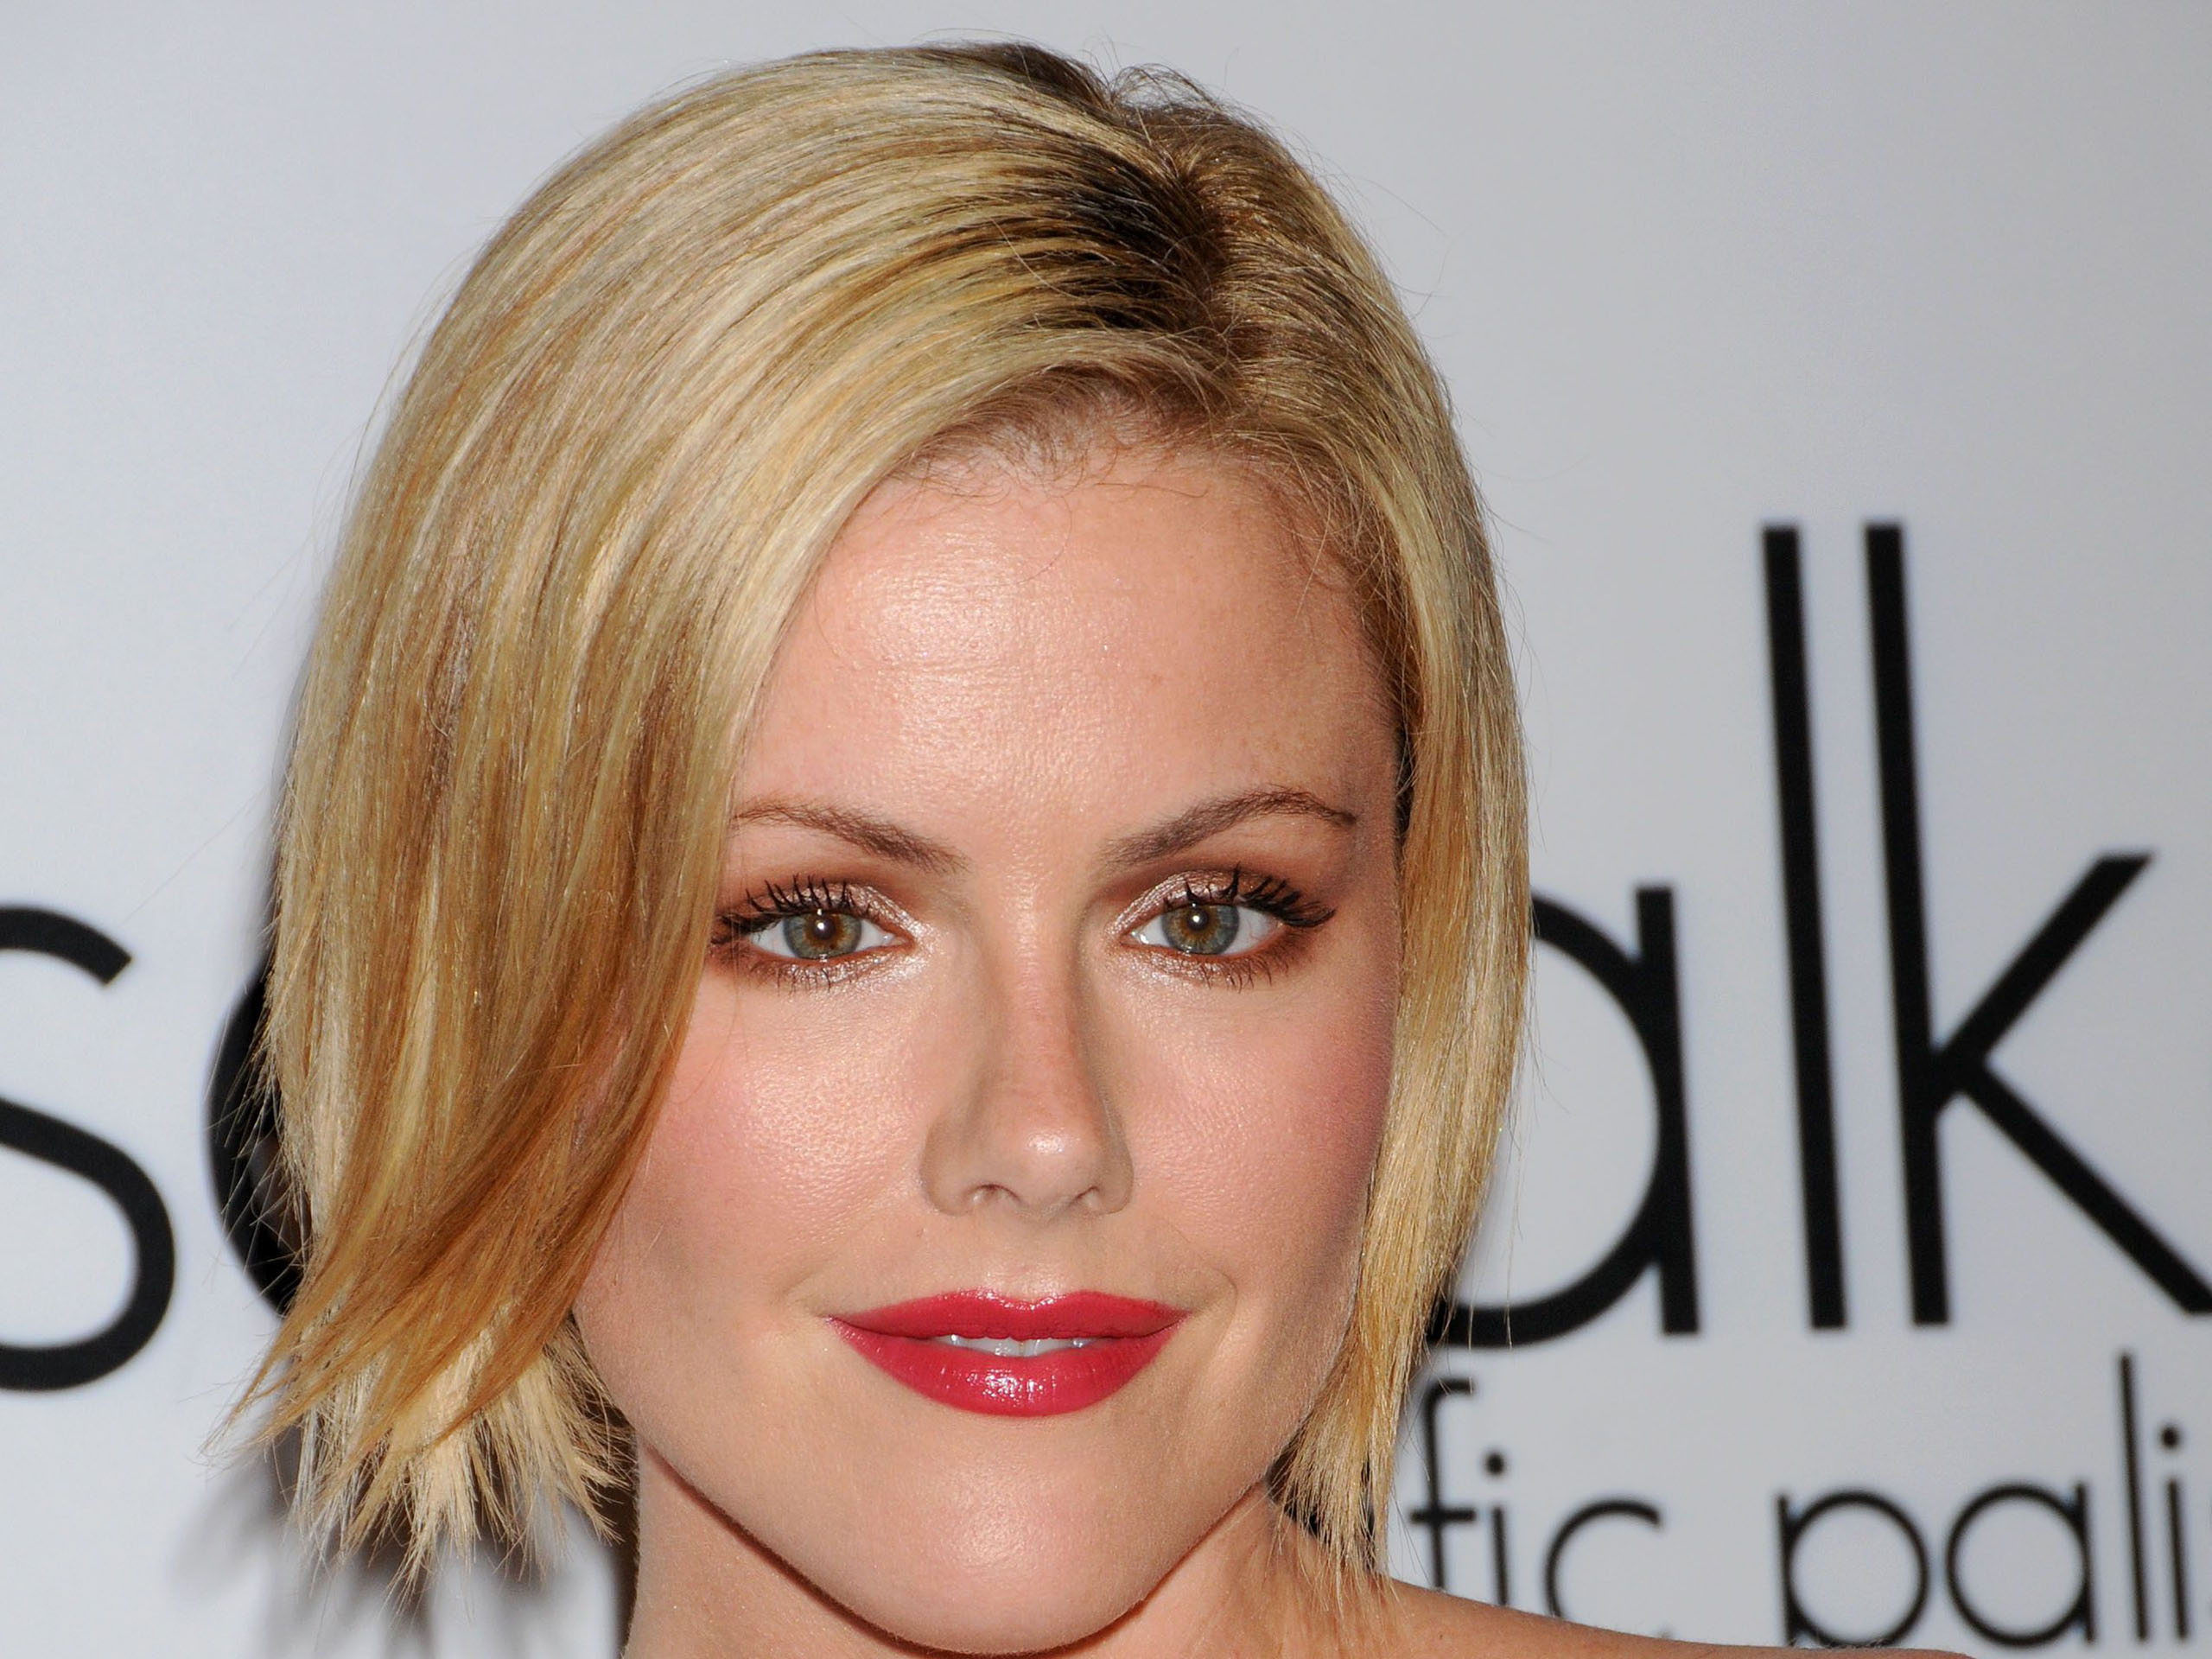 kathleen robertson short hair wallpaper 60651